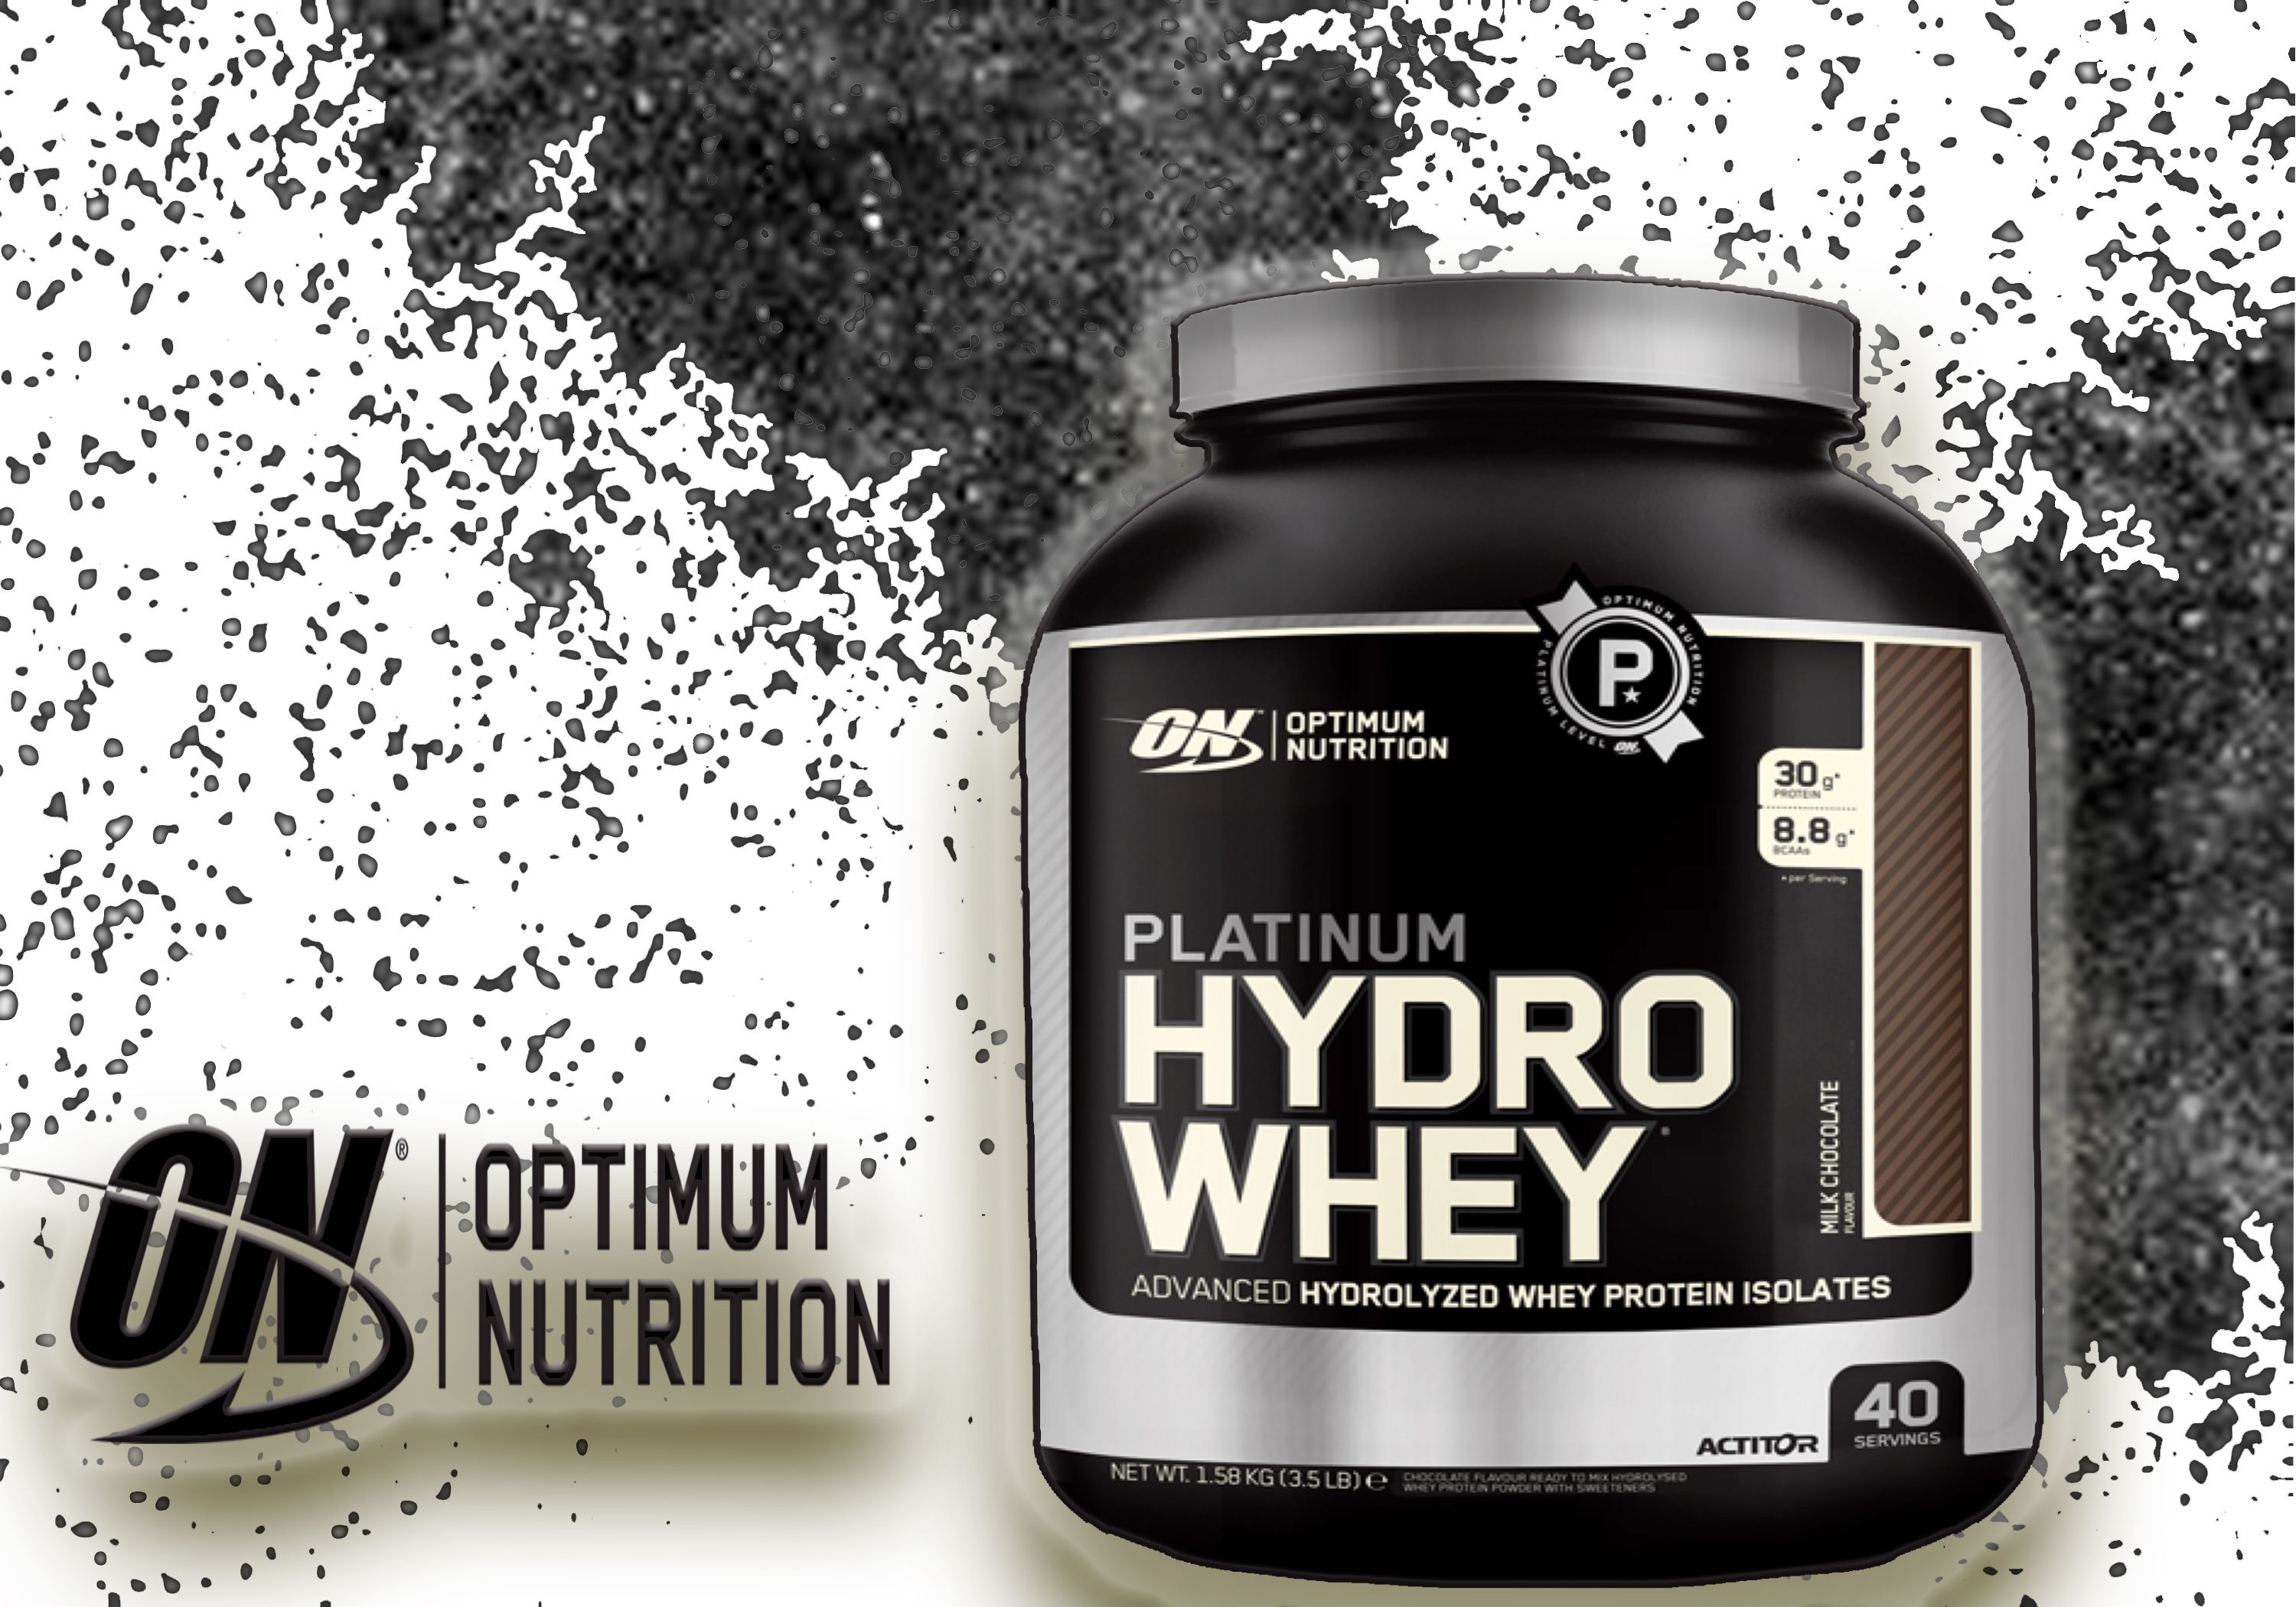 Optimum Nutrition Platinum Hydro Whey Optimum Nutrition Hydro Whey Hydrolyzed Whey Protein